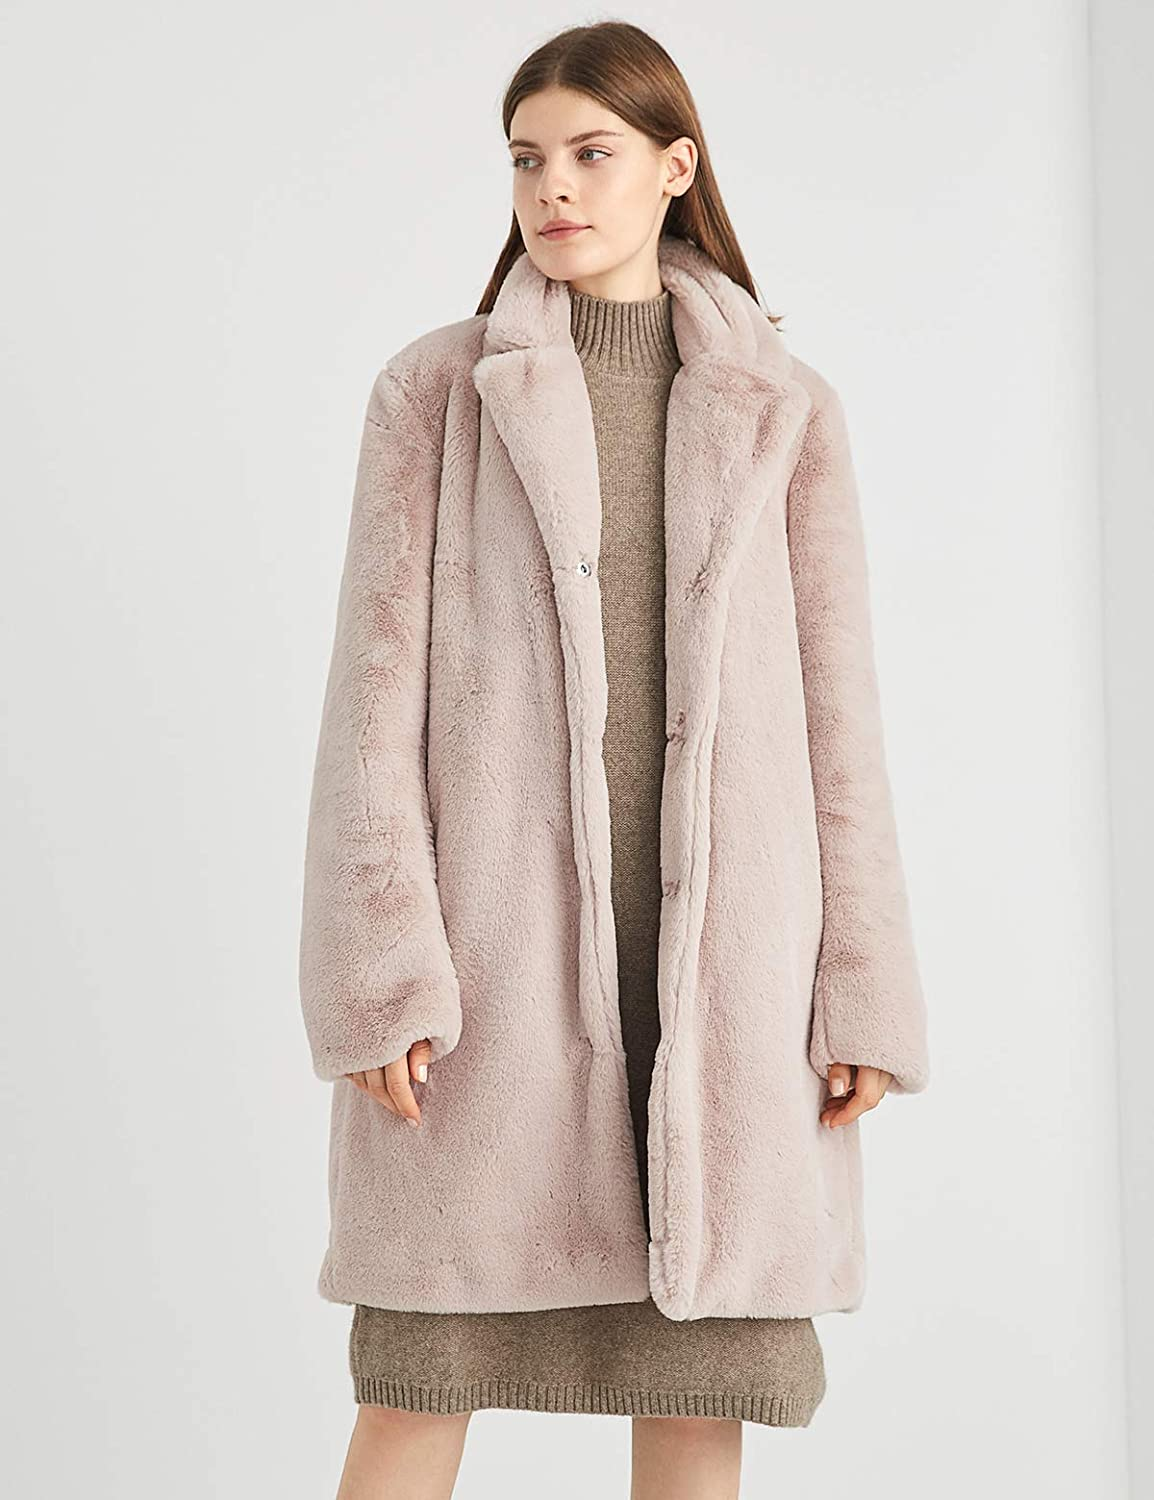 Escalier Womens Long Winter Faux Fur Coat Warm Thick Cape Fluffy Trench Overcoat with Pockets